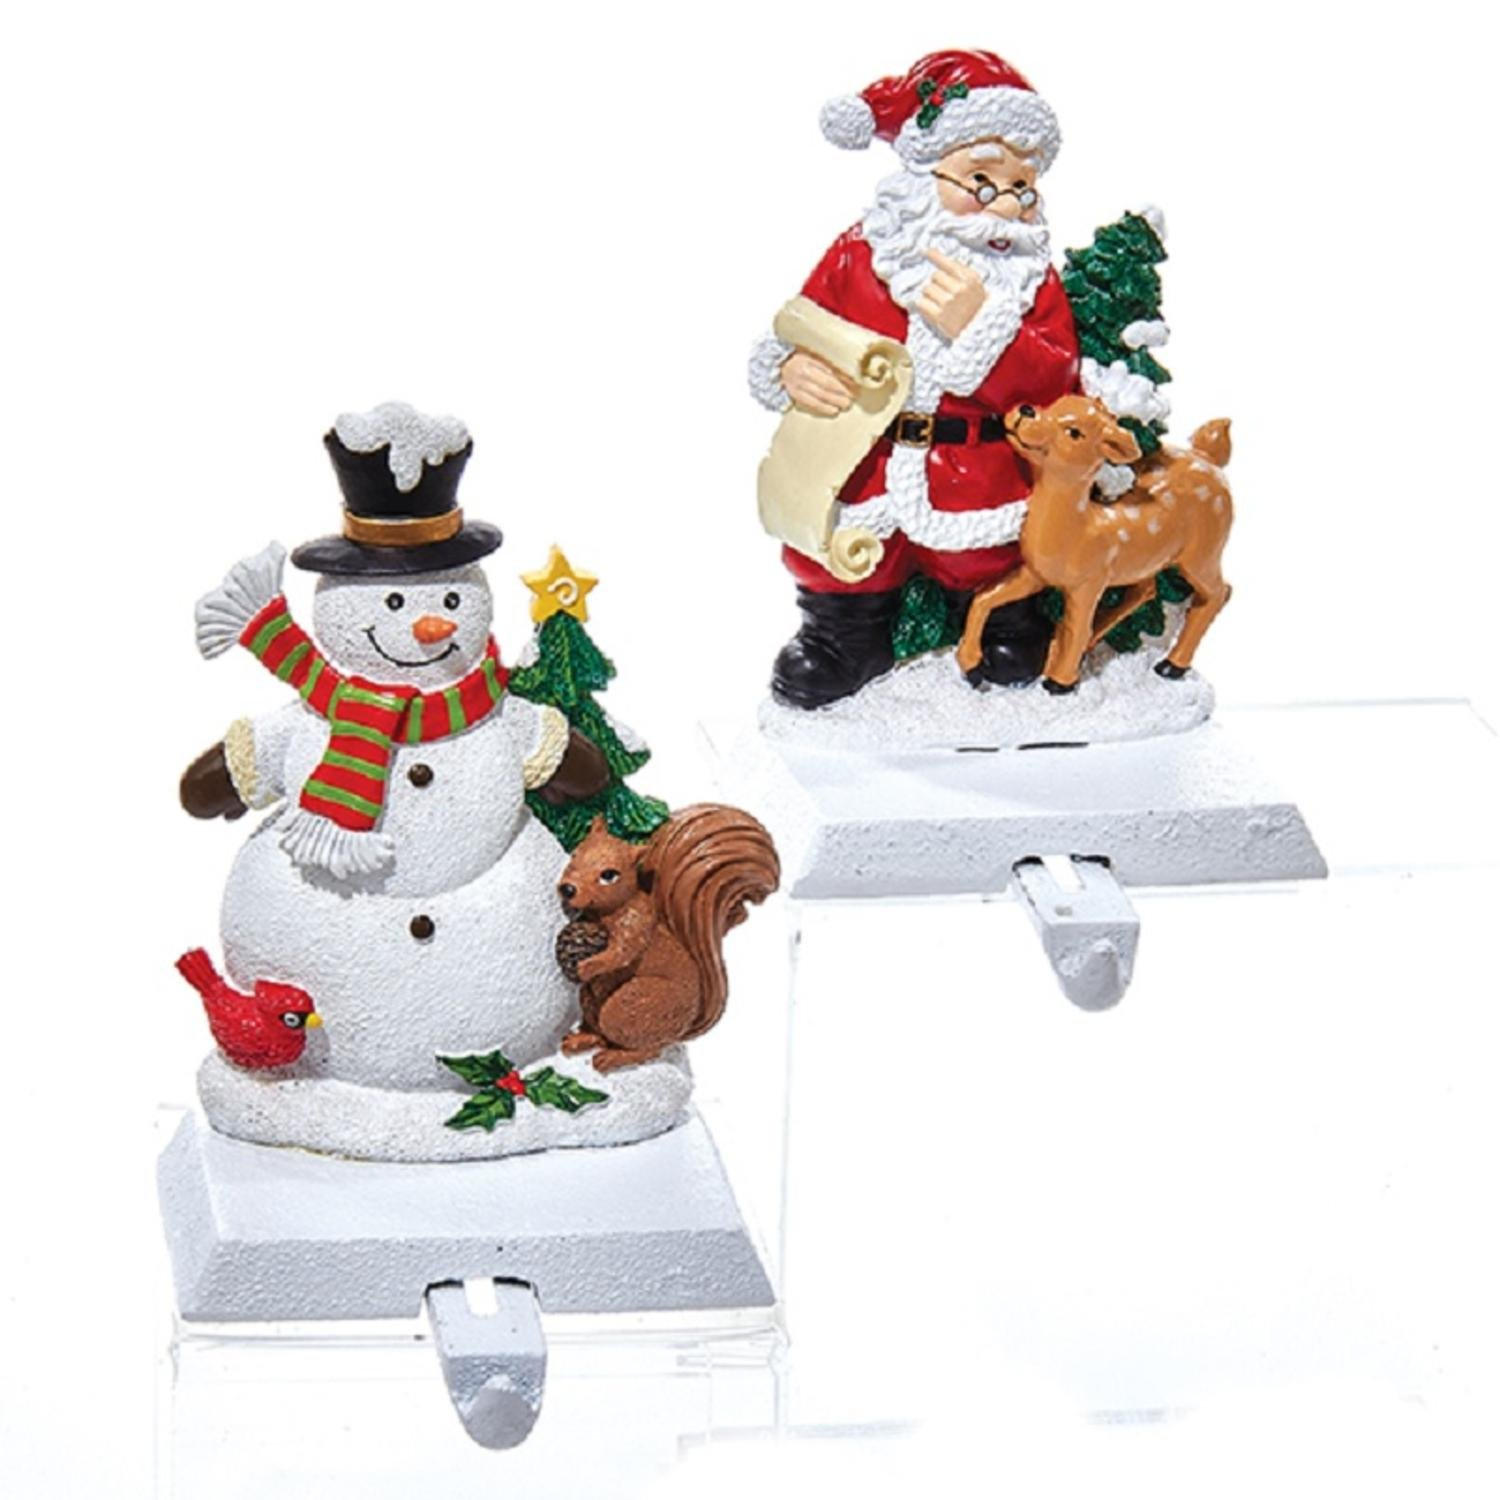 Pack of 4 Winter Snowman and Santa Claus with Reindeer Christmas Stocking Holders 6''